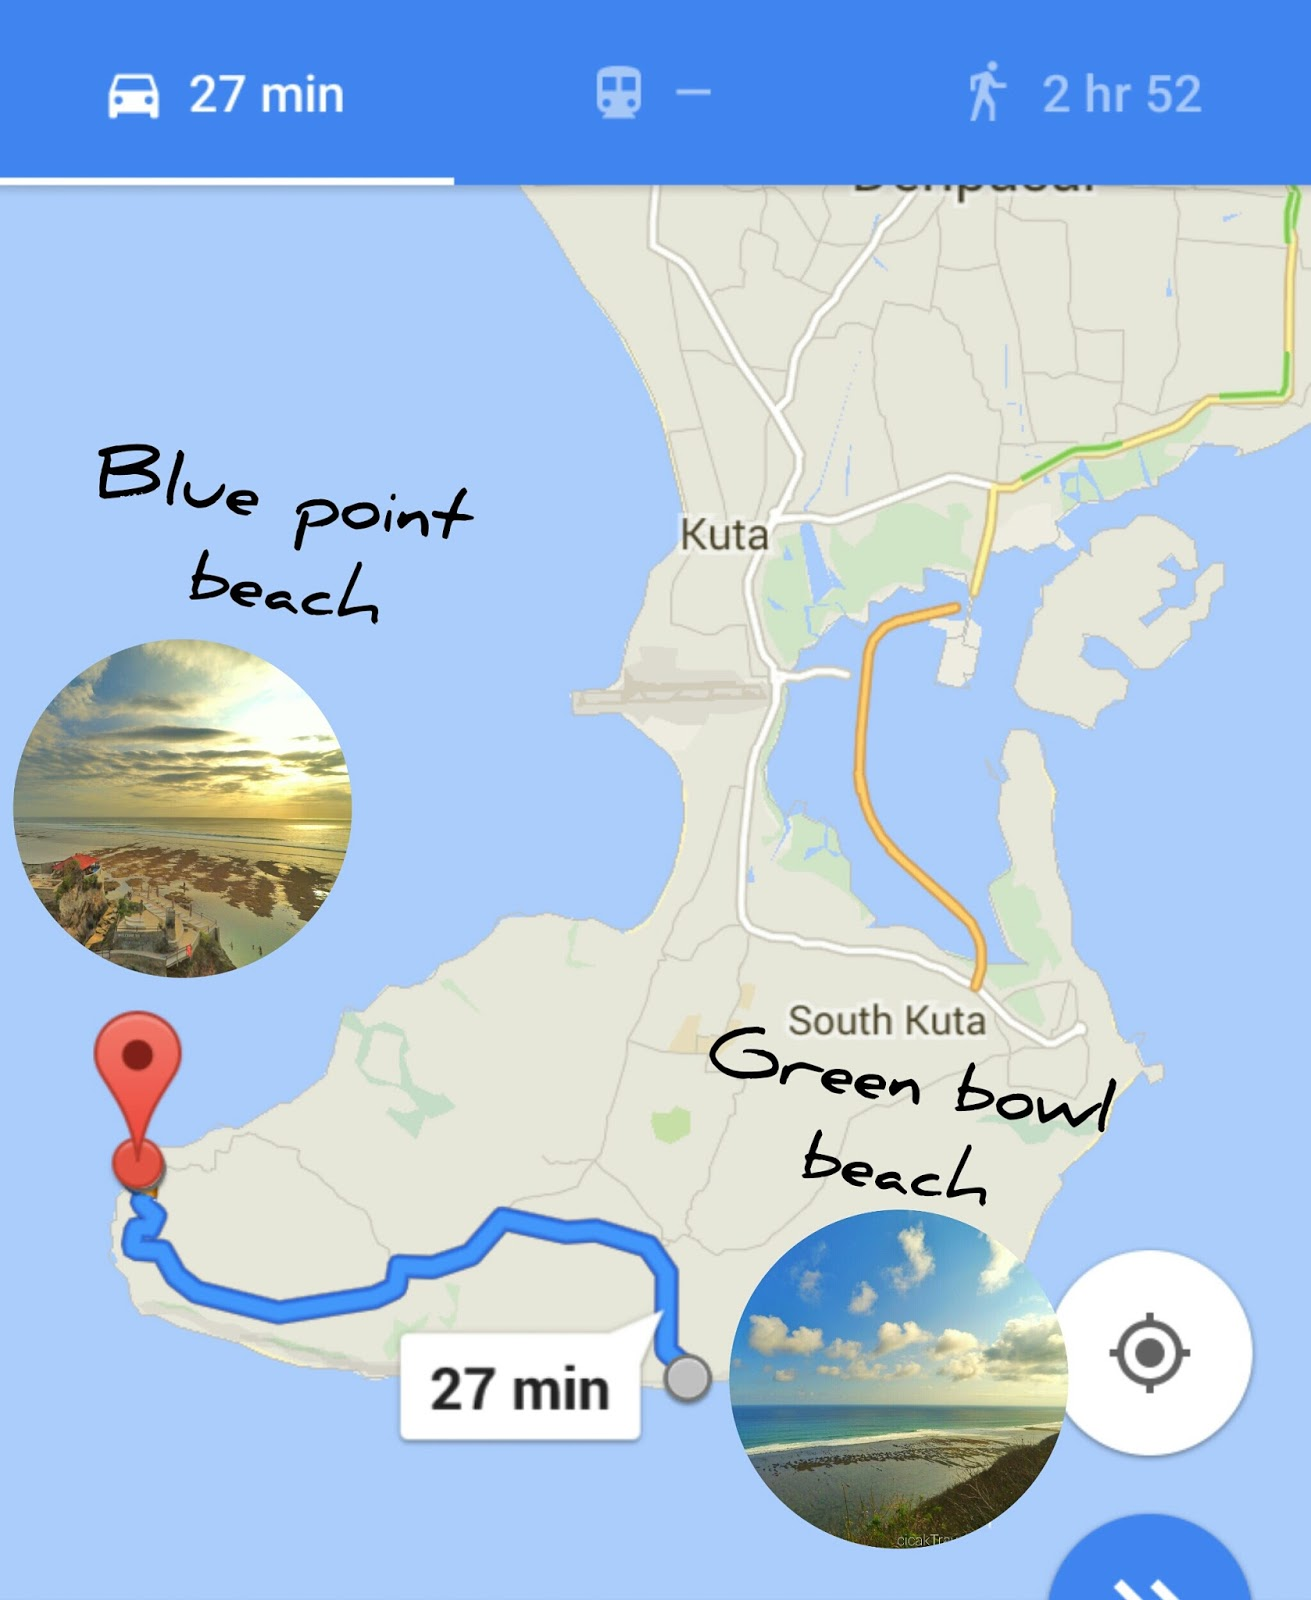 the route from green bowl beach to blue point beach